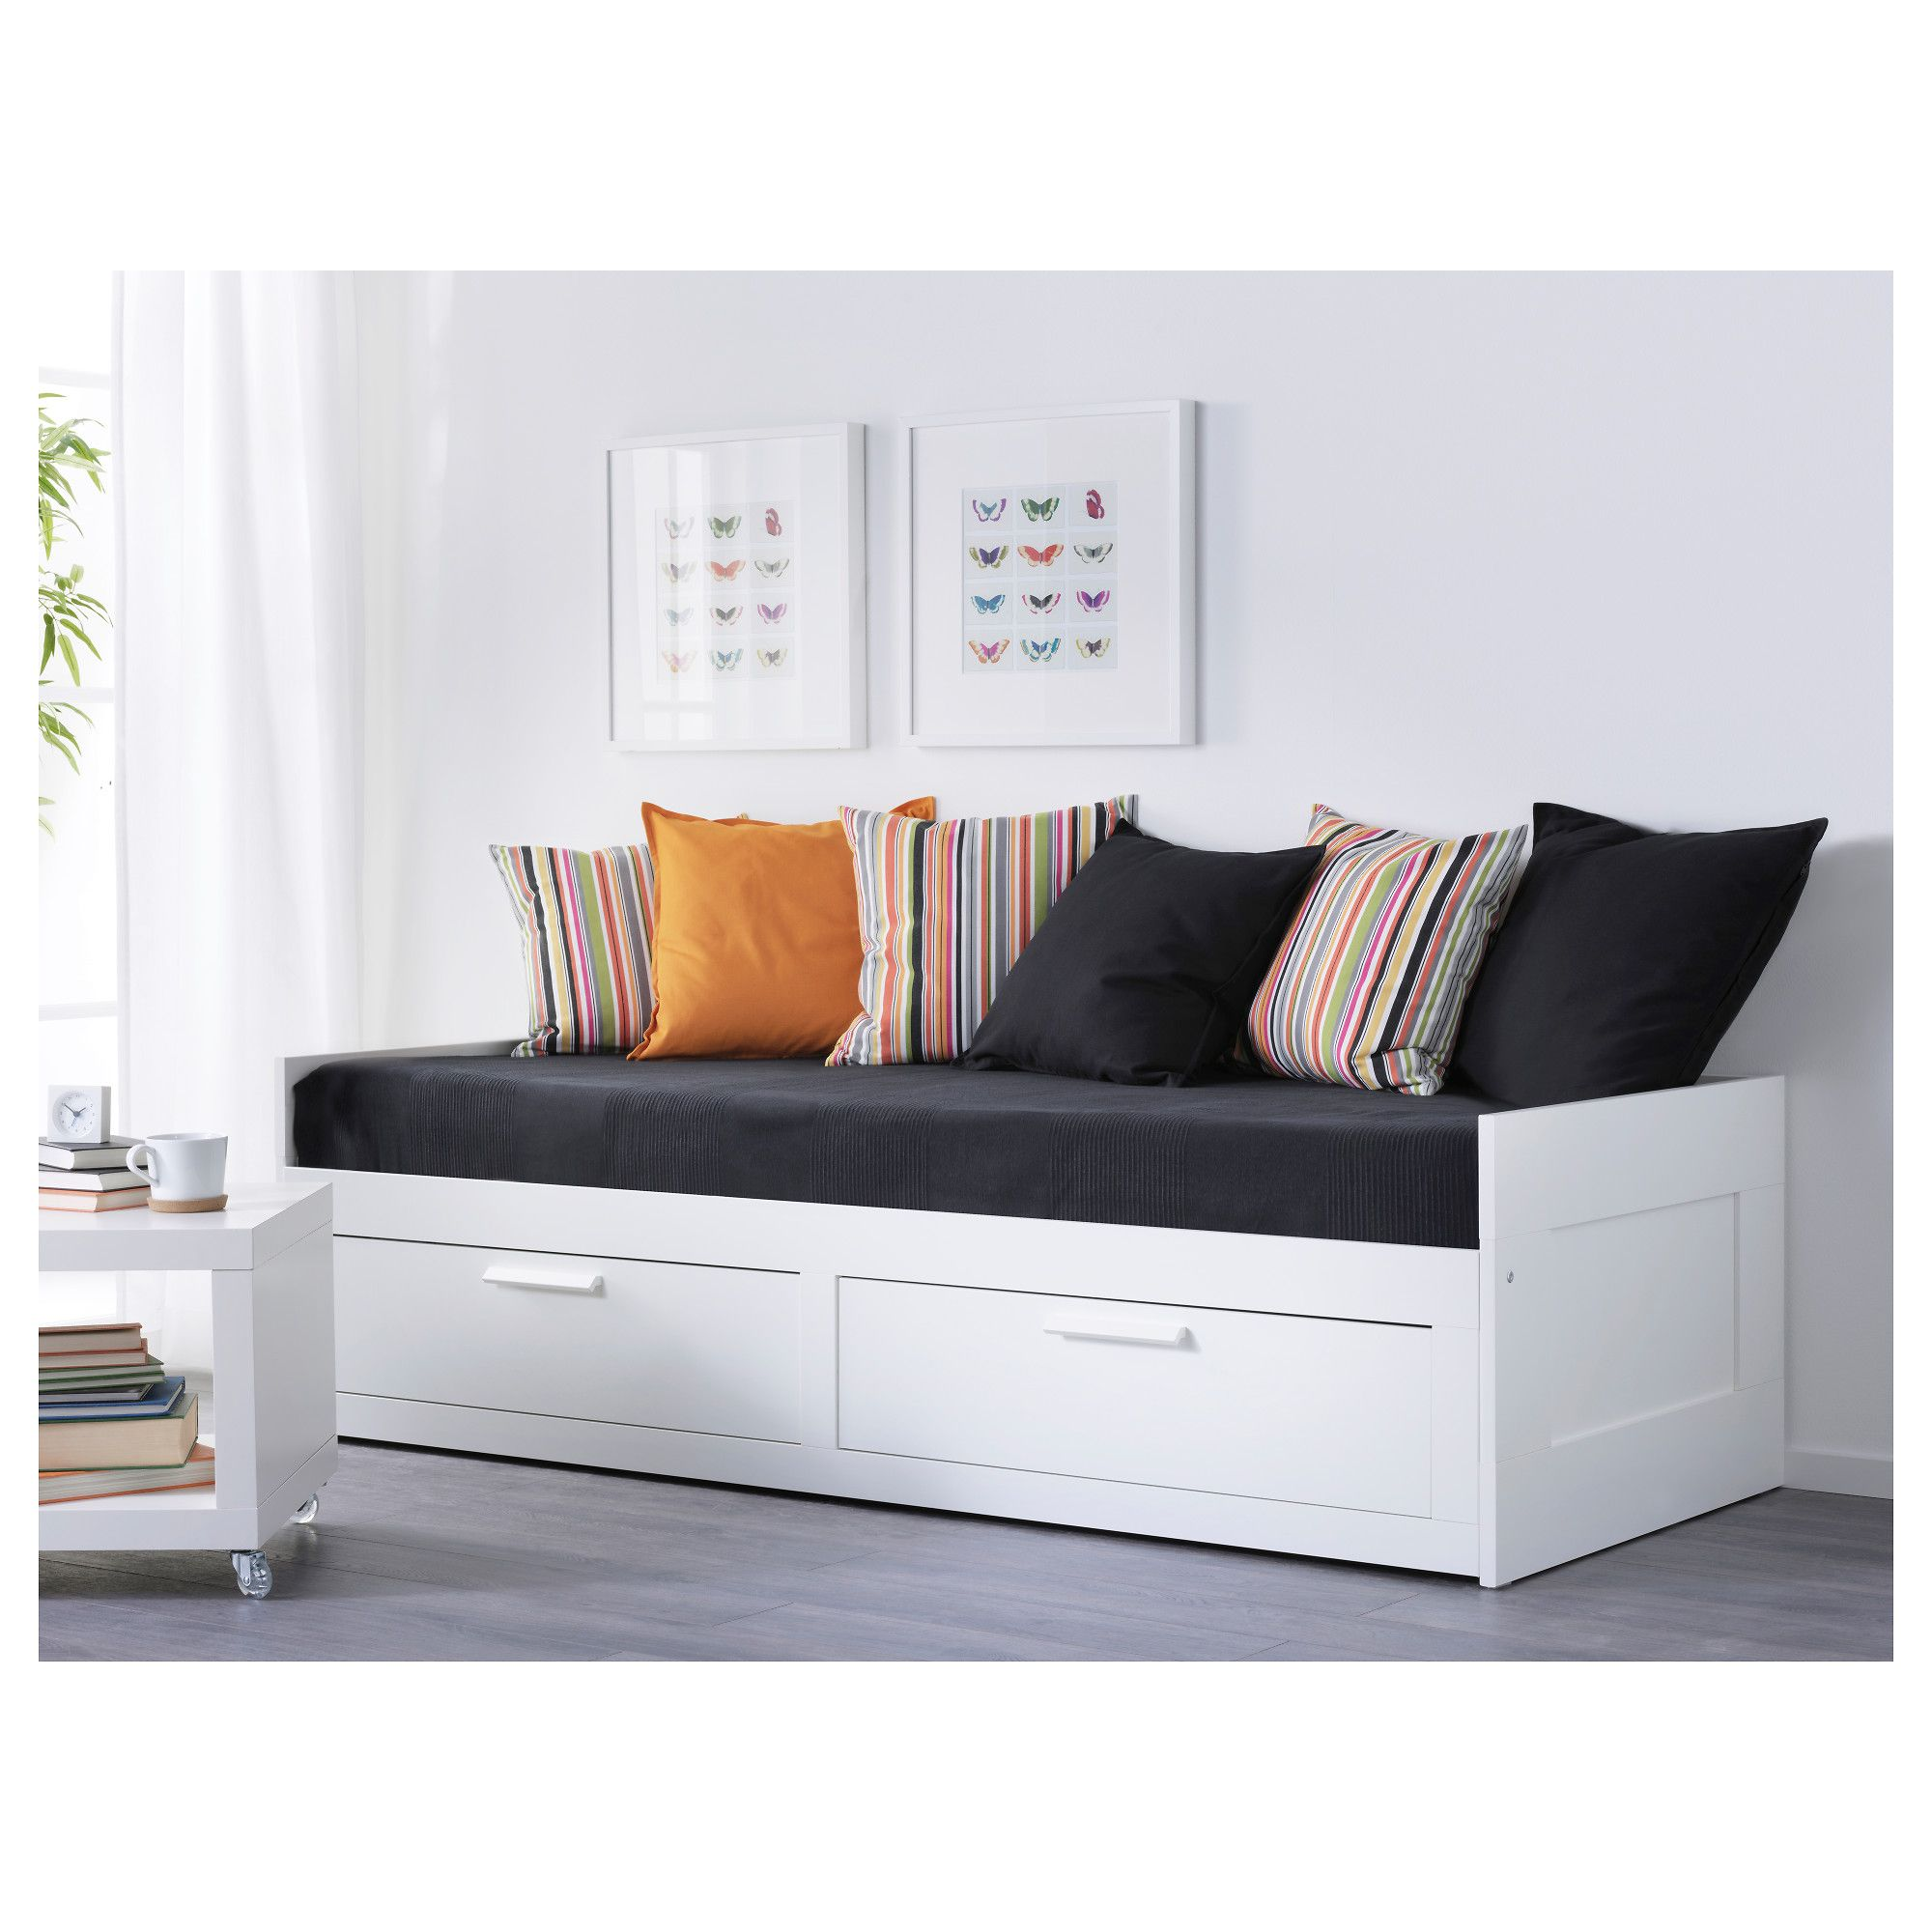 brimnes day bed frame with 2 drawers white ikea bed frames